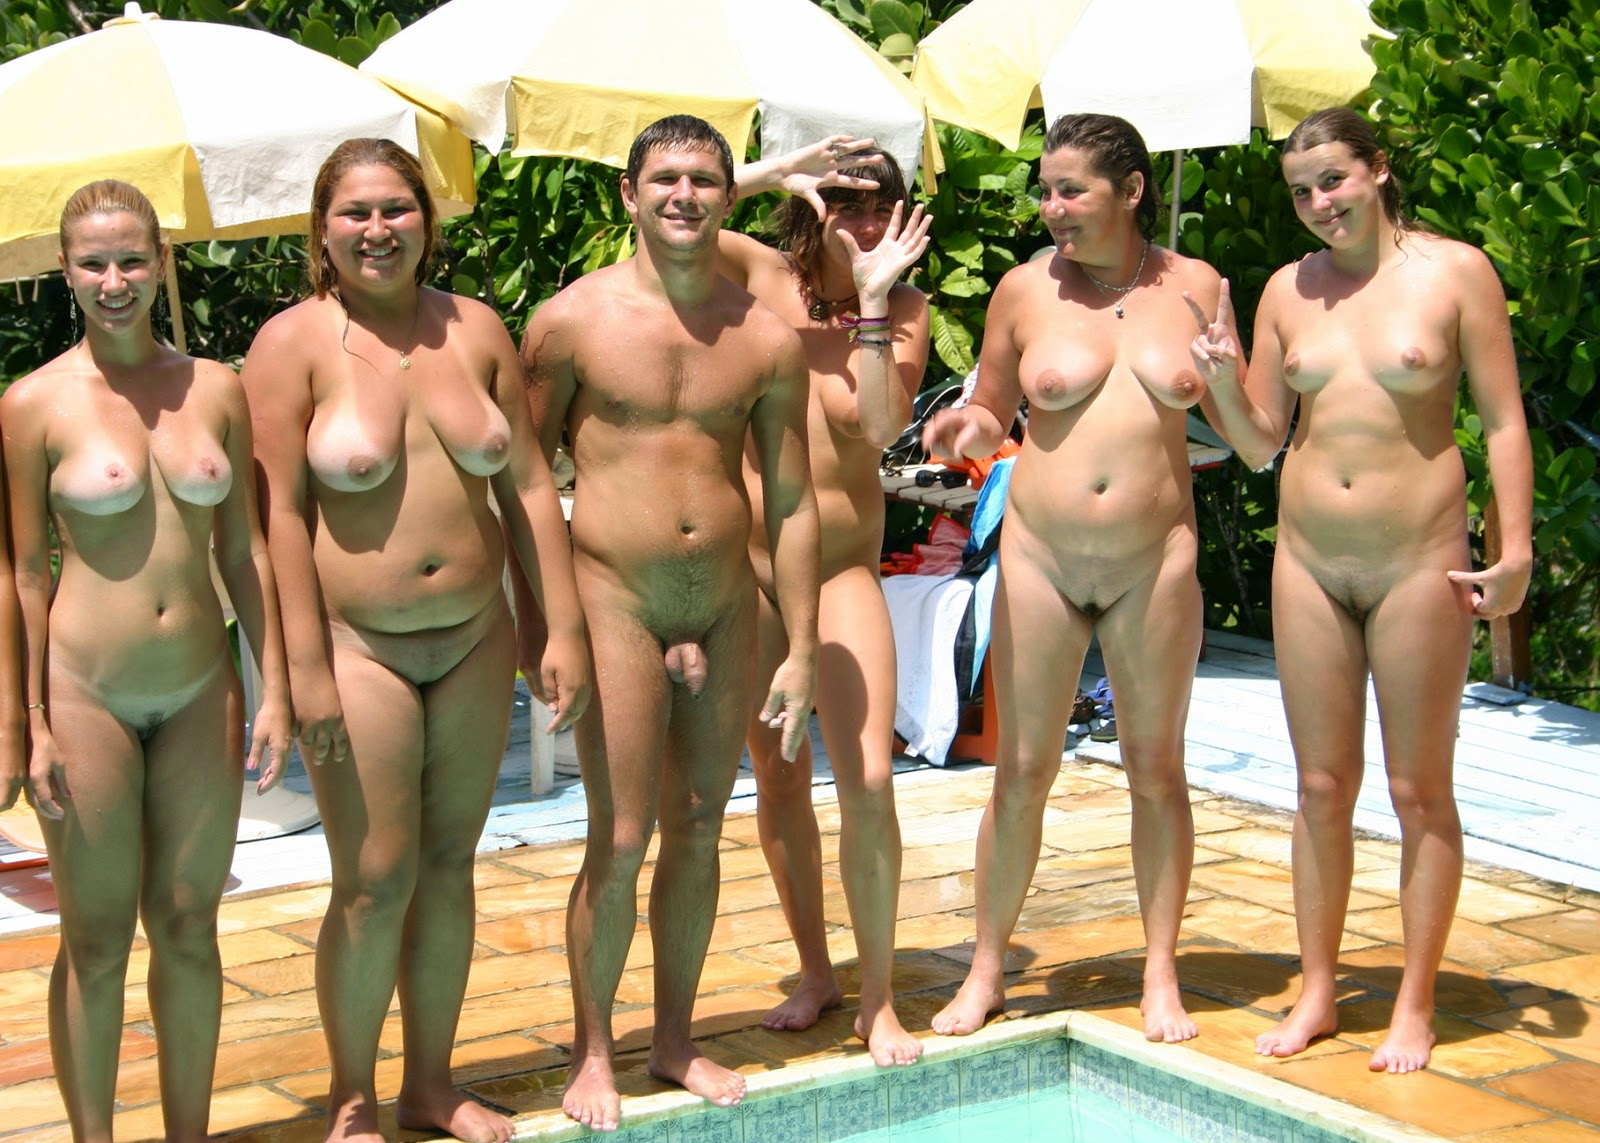 Nudism - Photo - Hq  Nudists - Brazil Camp No Kids-1649